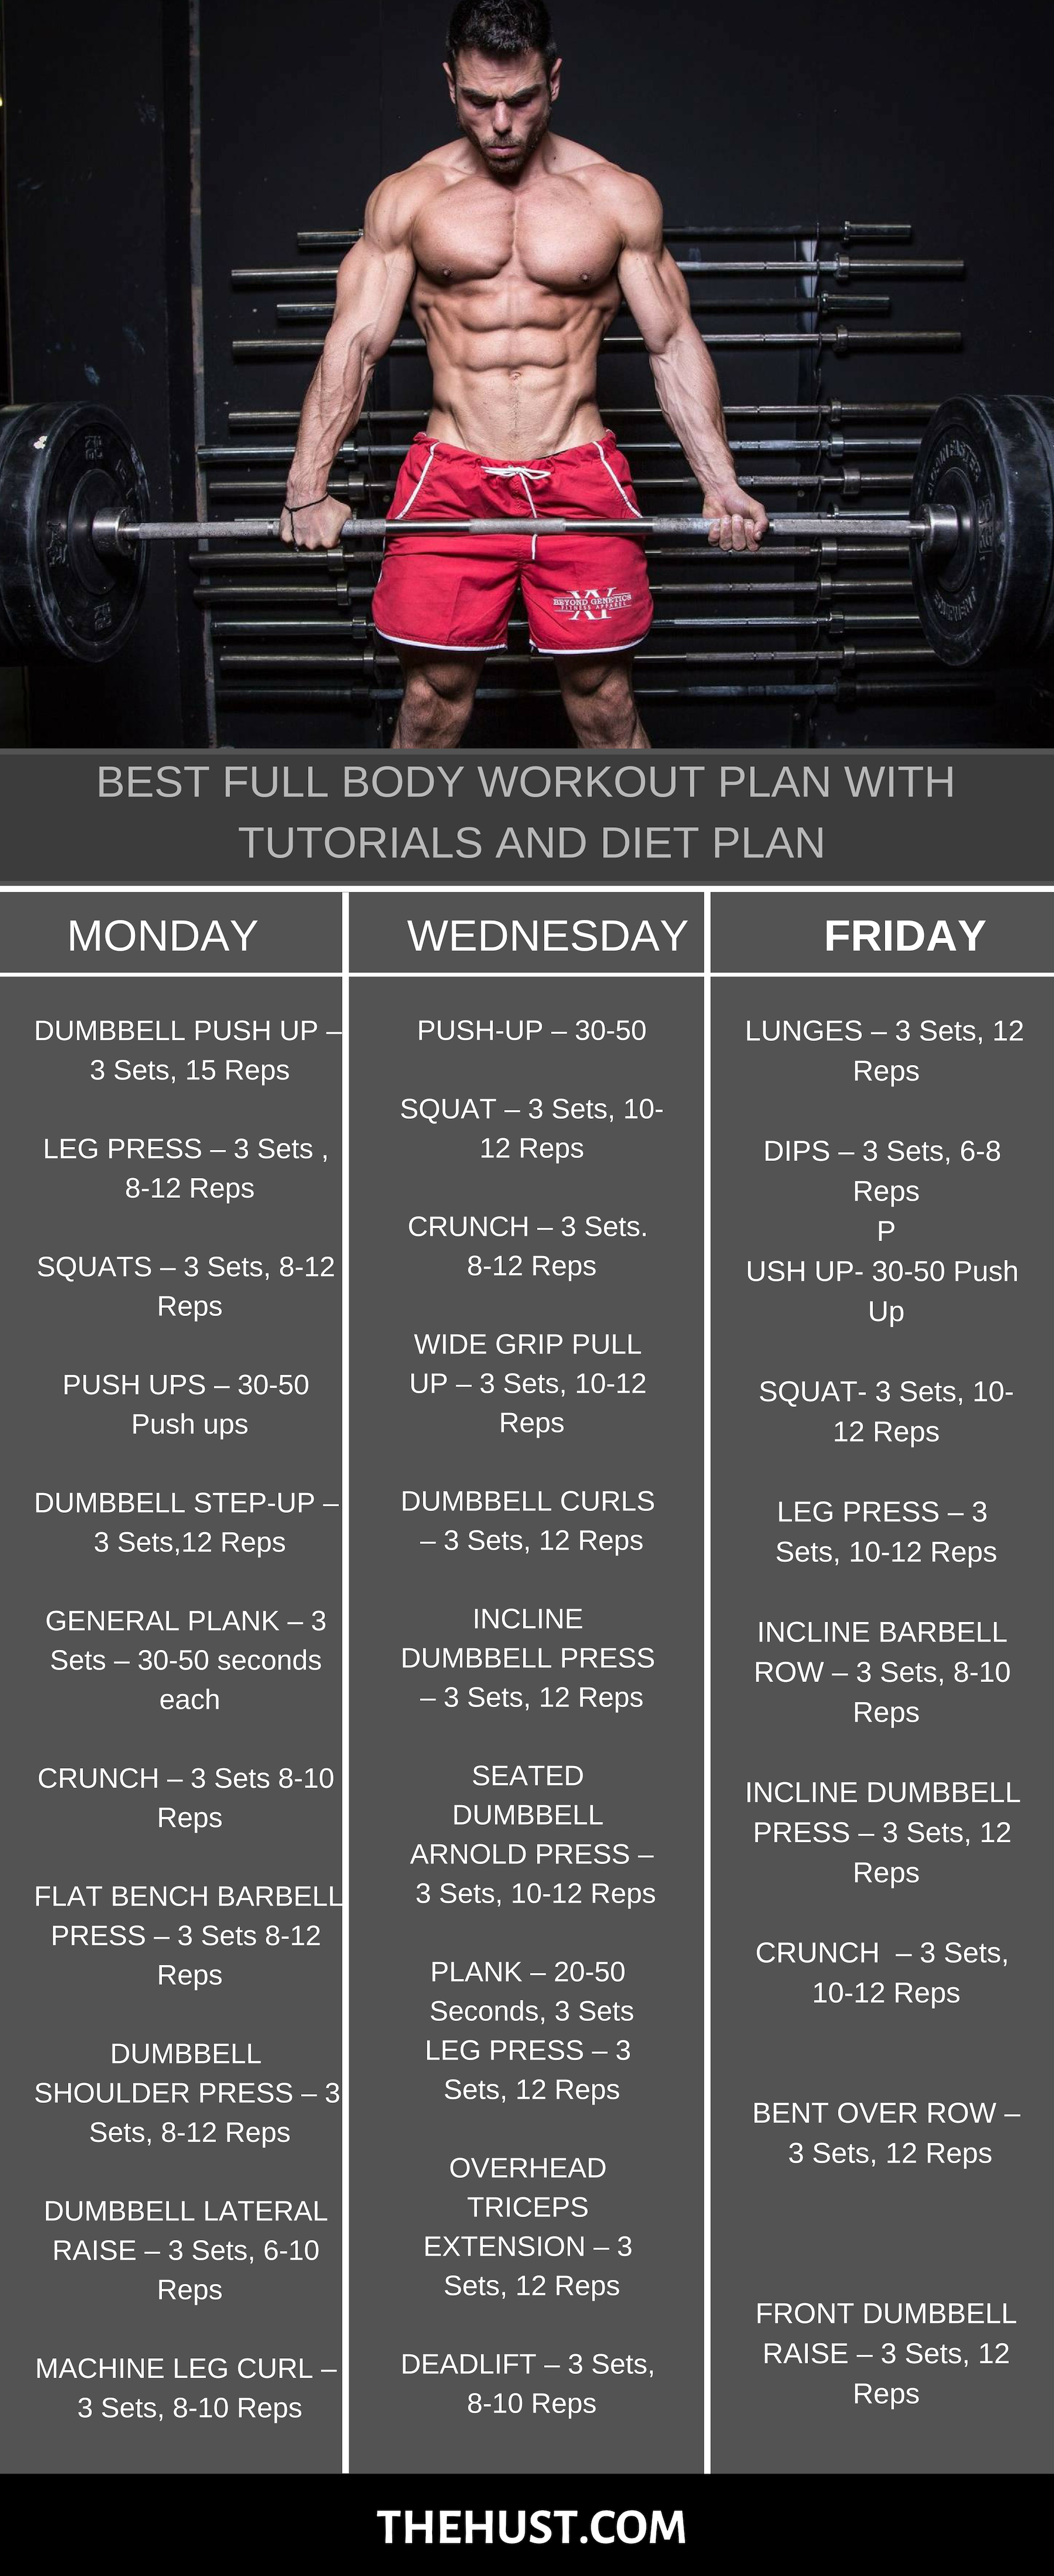 Total Body Workout Plan for Fat Loss and Muscle Gain 2019 #workoutplans